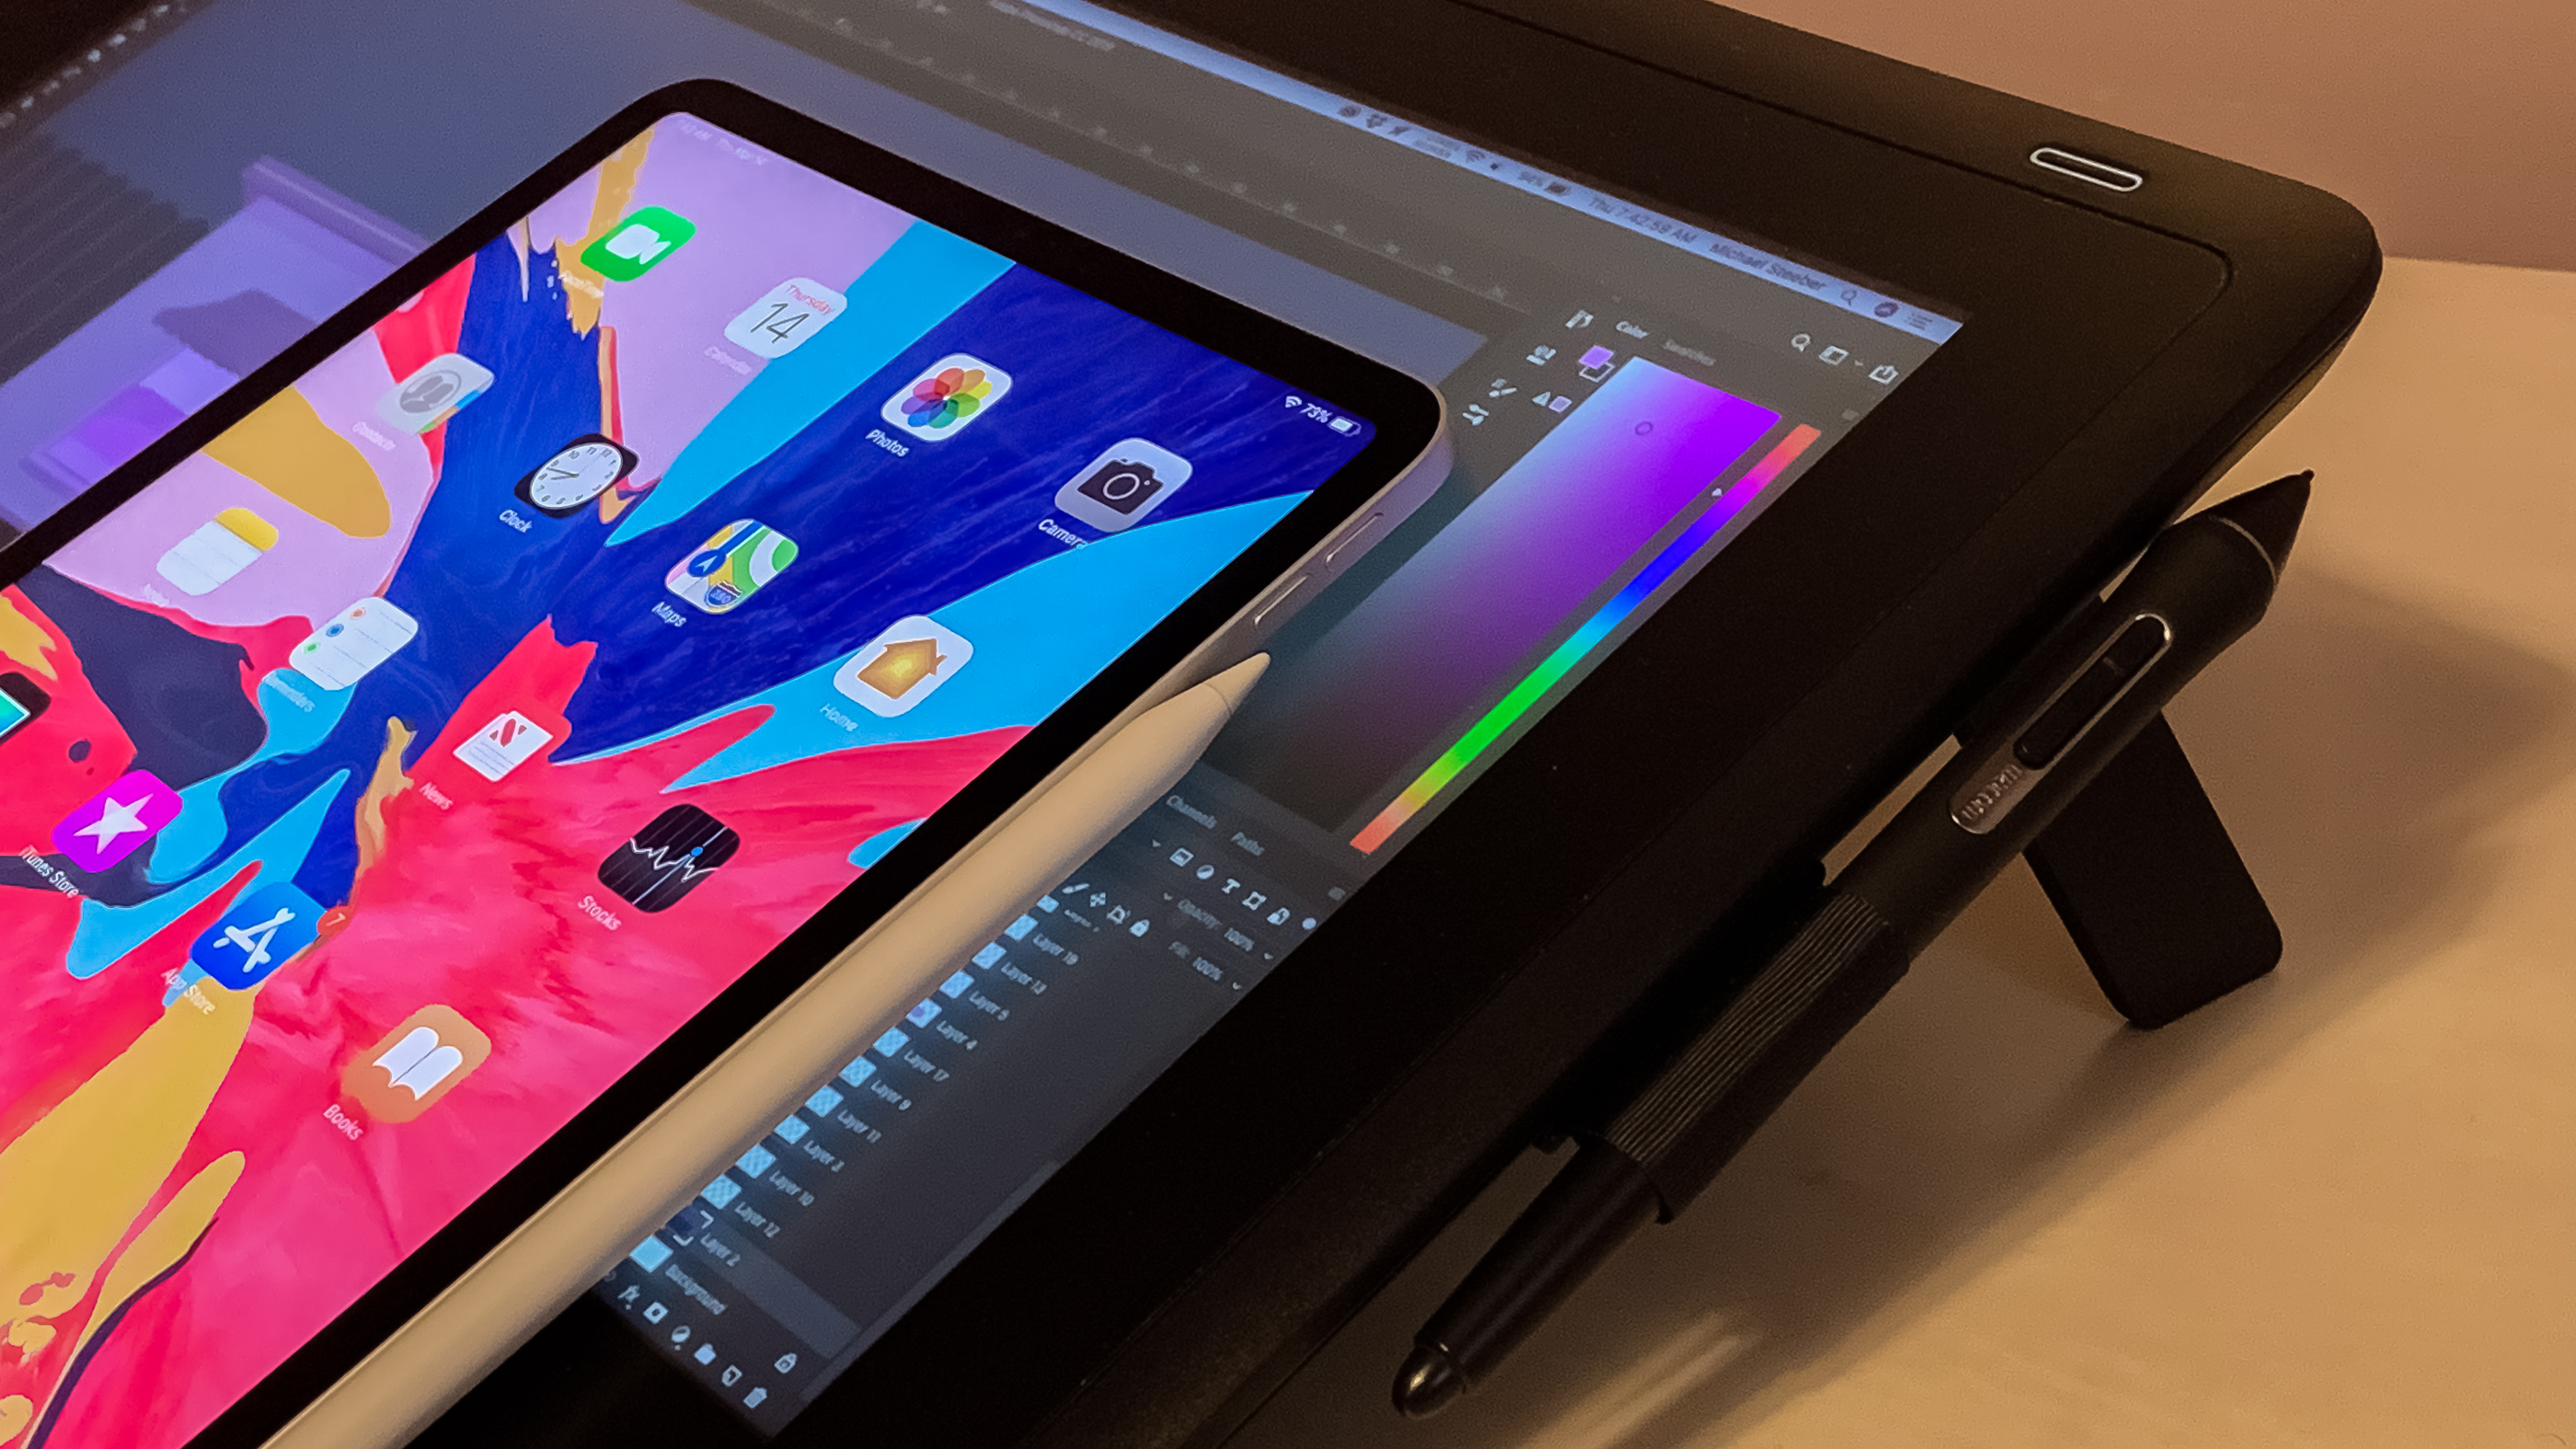 Hands-on: Wacom's Cintiq 16 tablet from the perspective of an iPad